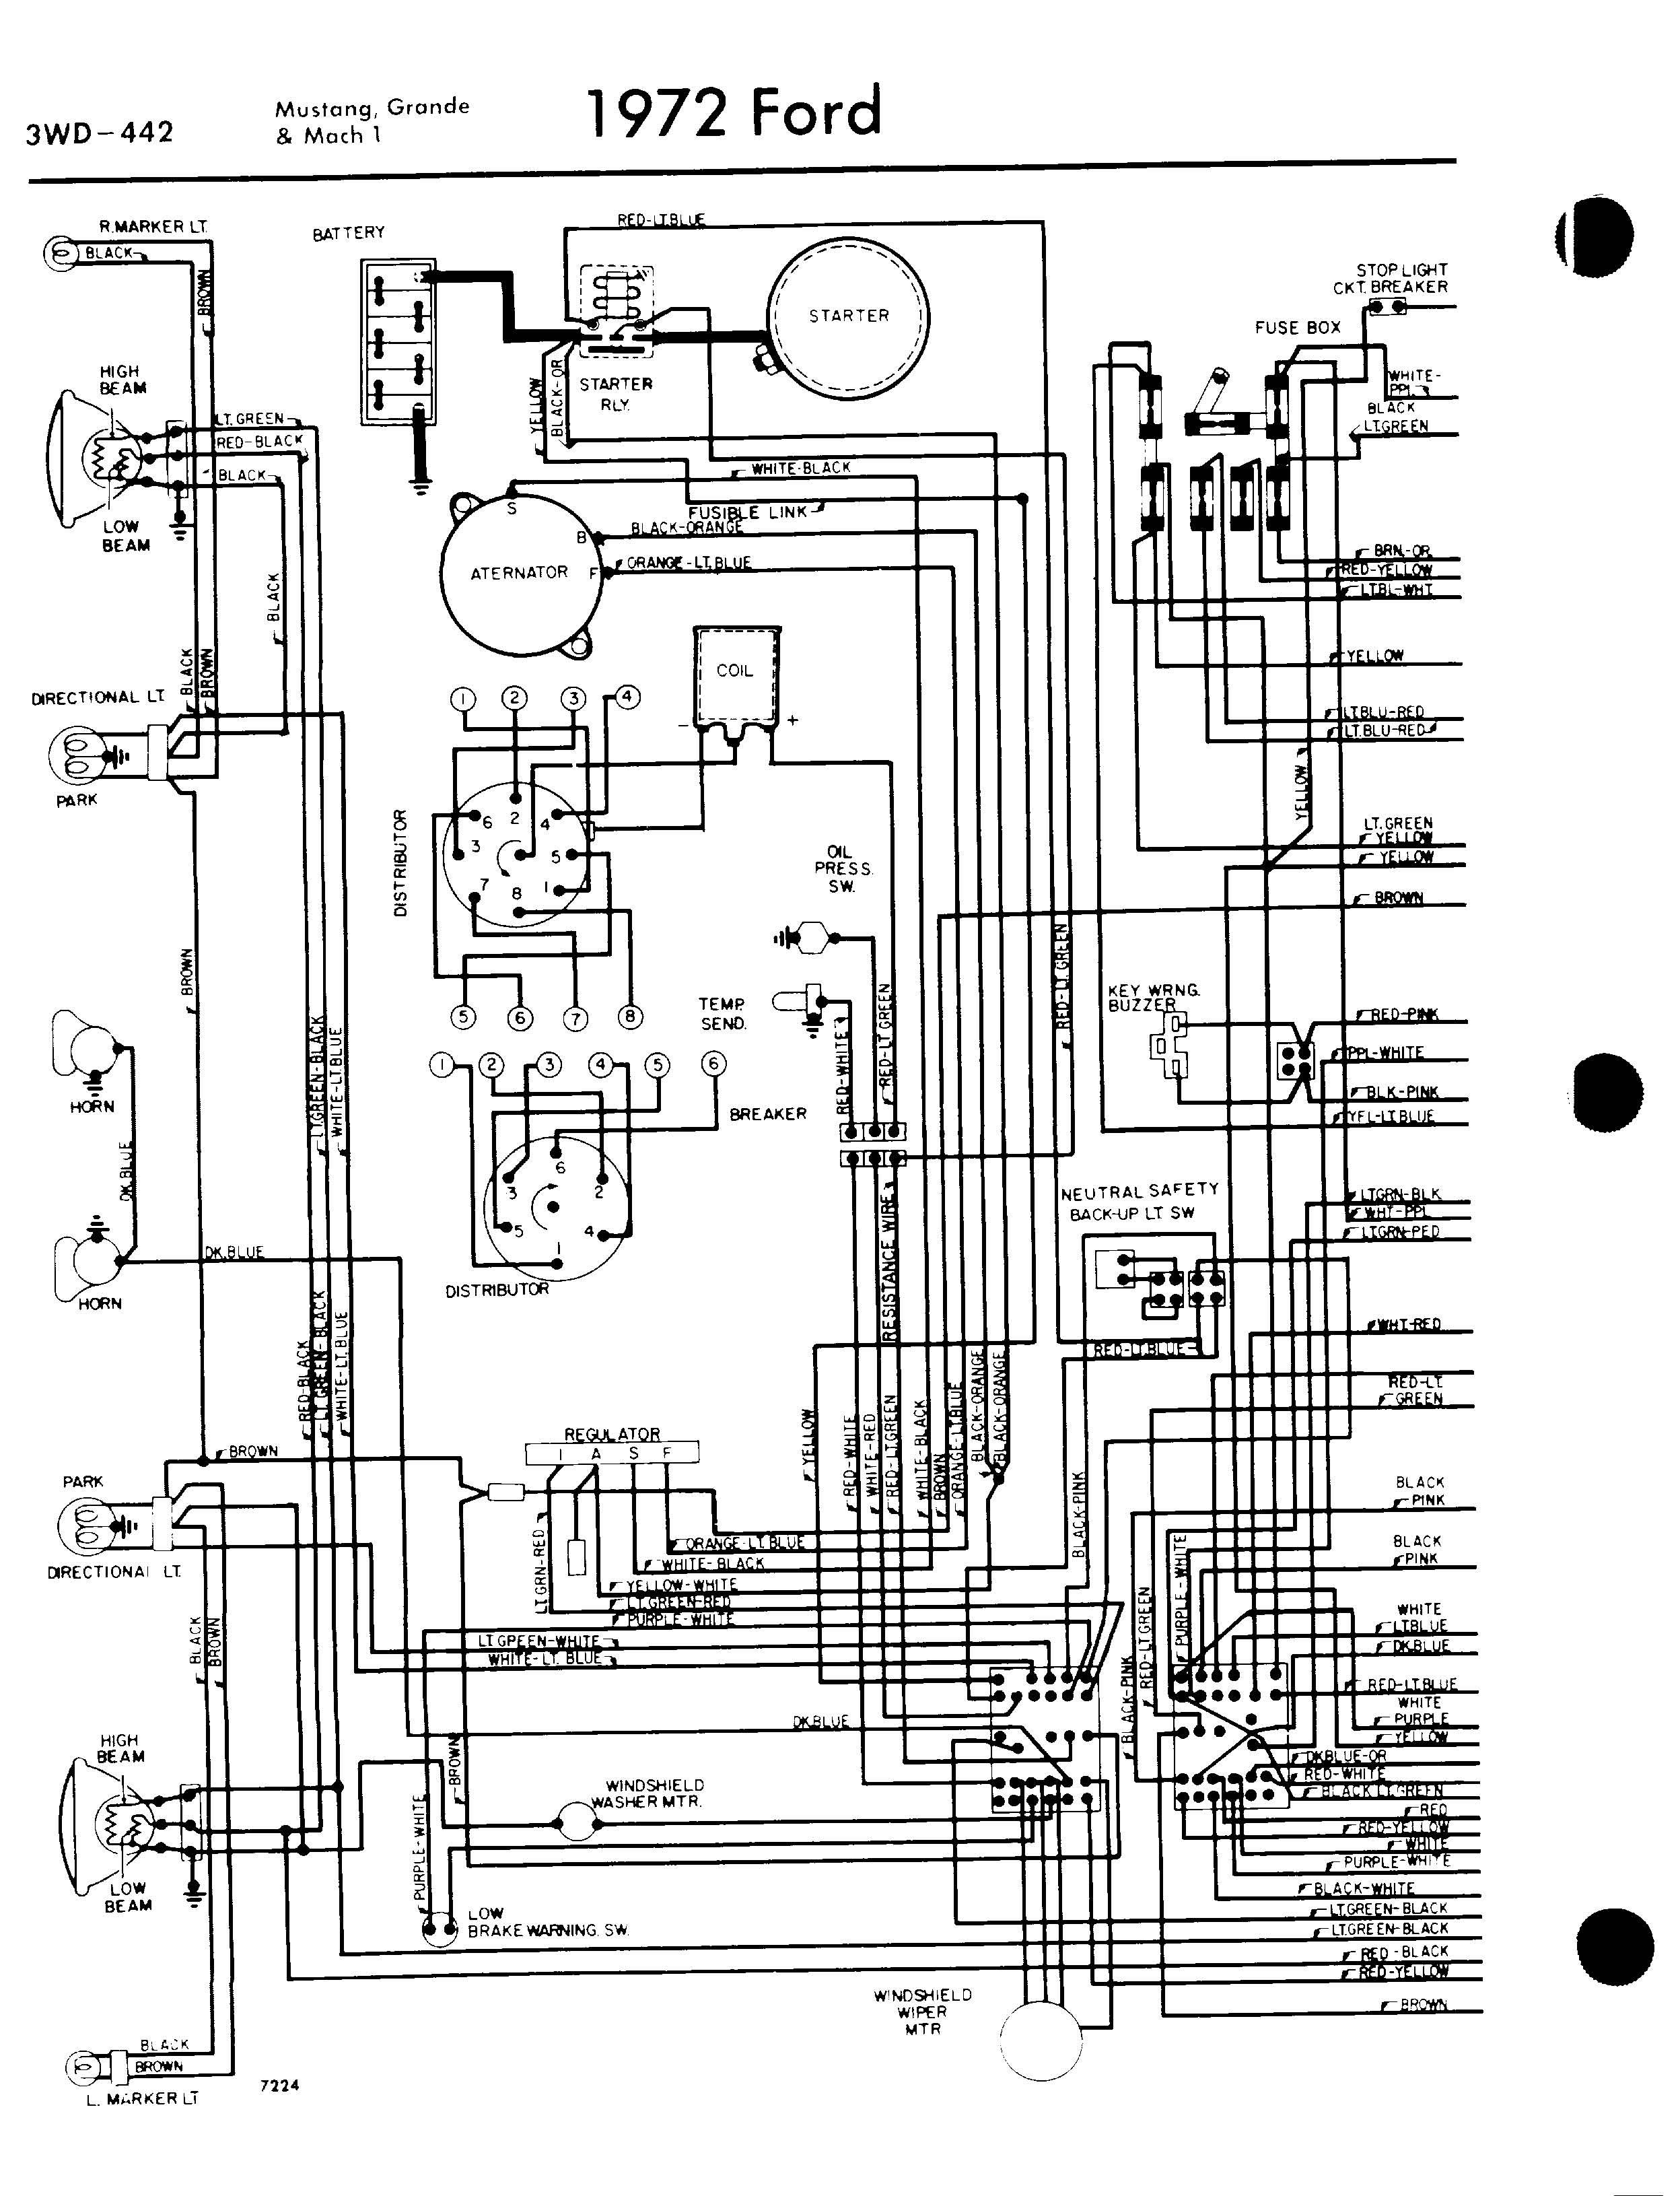 71af7a58e095e6a7716b32f1b23e8bd2 100 [ mustang wiring diagram ] 2001 ford mustang wiring diagram Trailer Wiring Diagram at alyssarenee.co